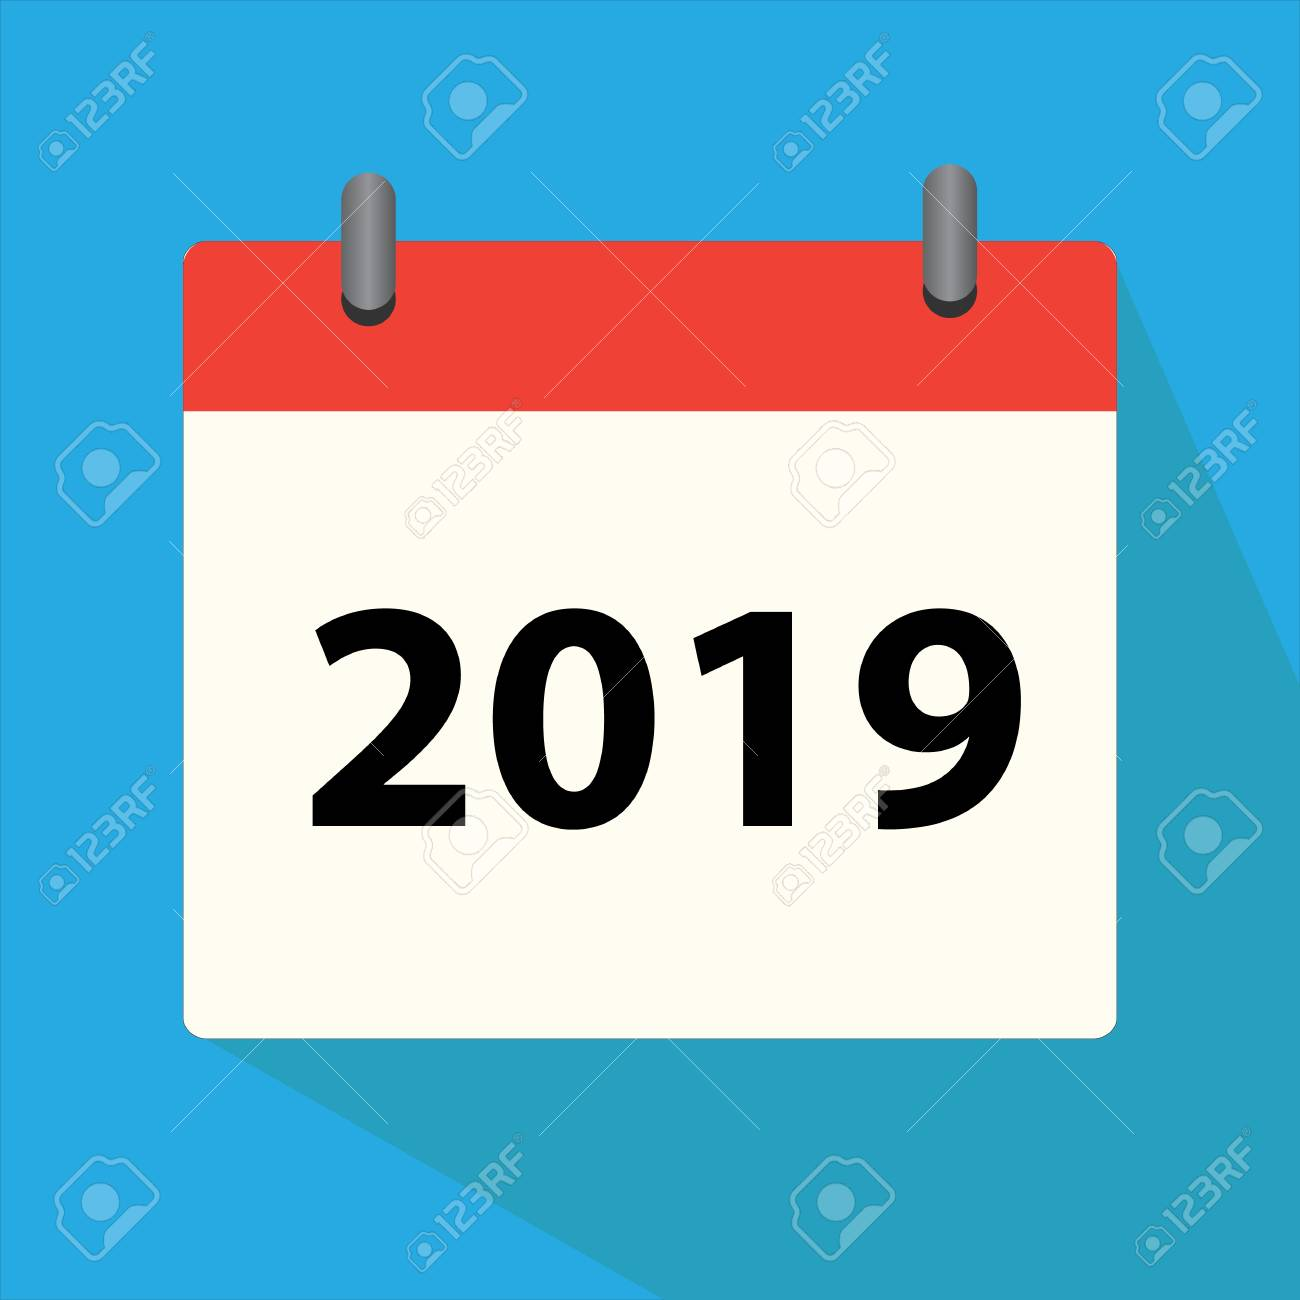 Calendar 2019 Icon On White Background Calendar 2019 Sign For 1300x1300